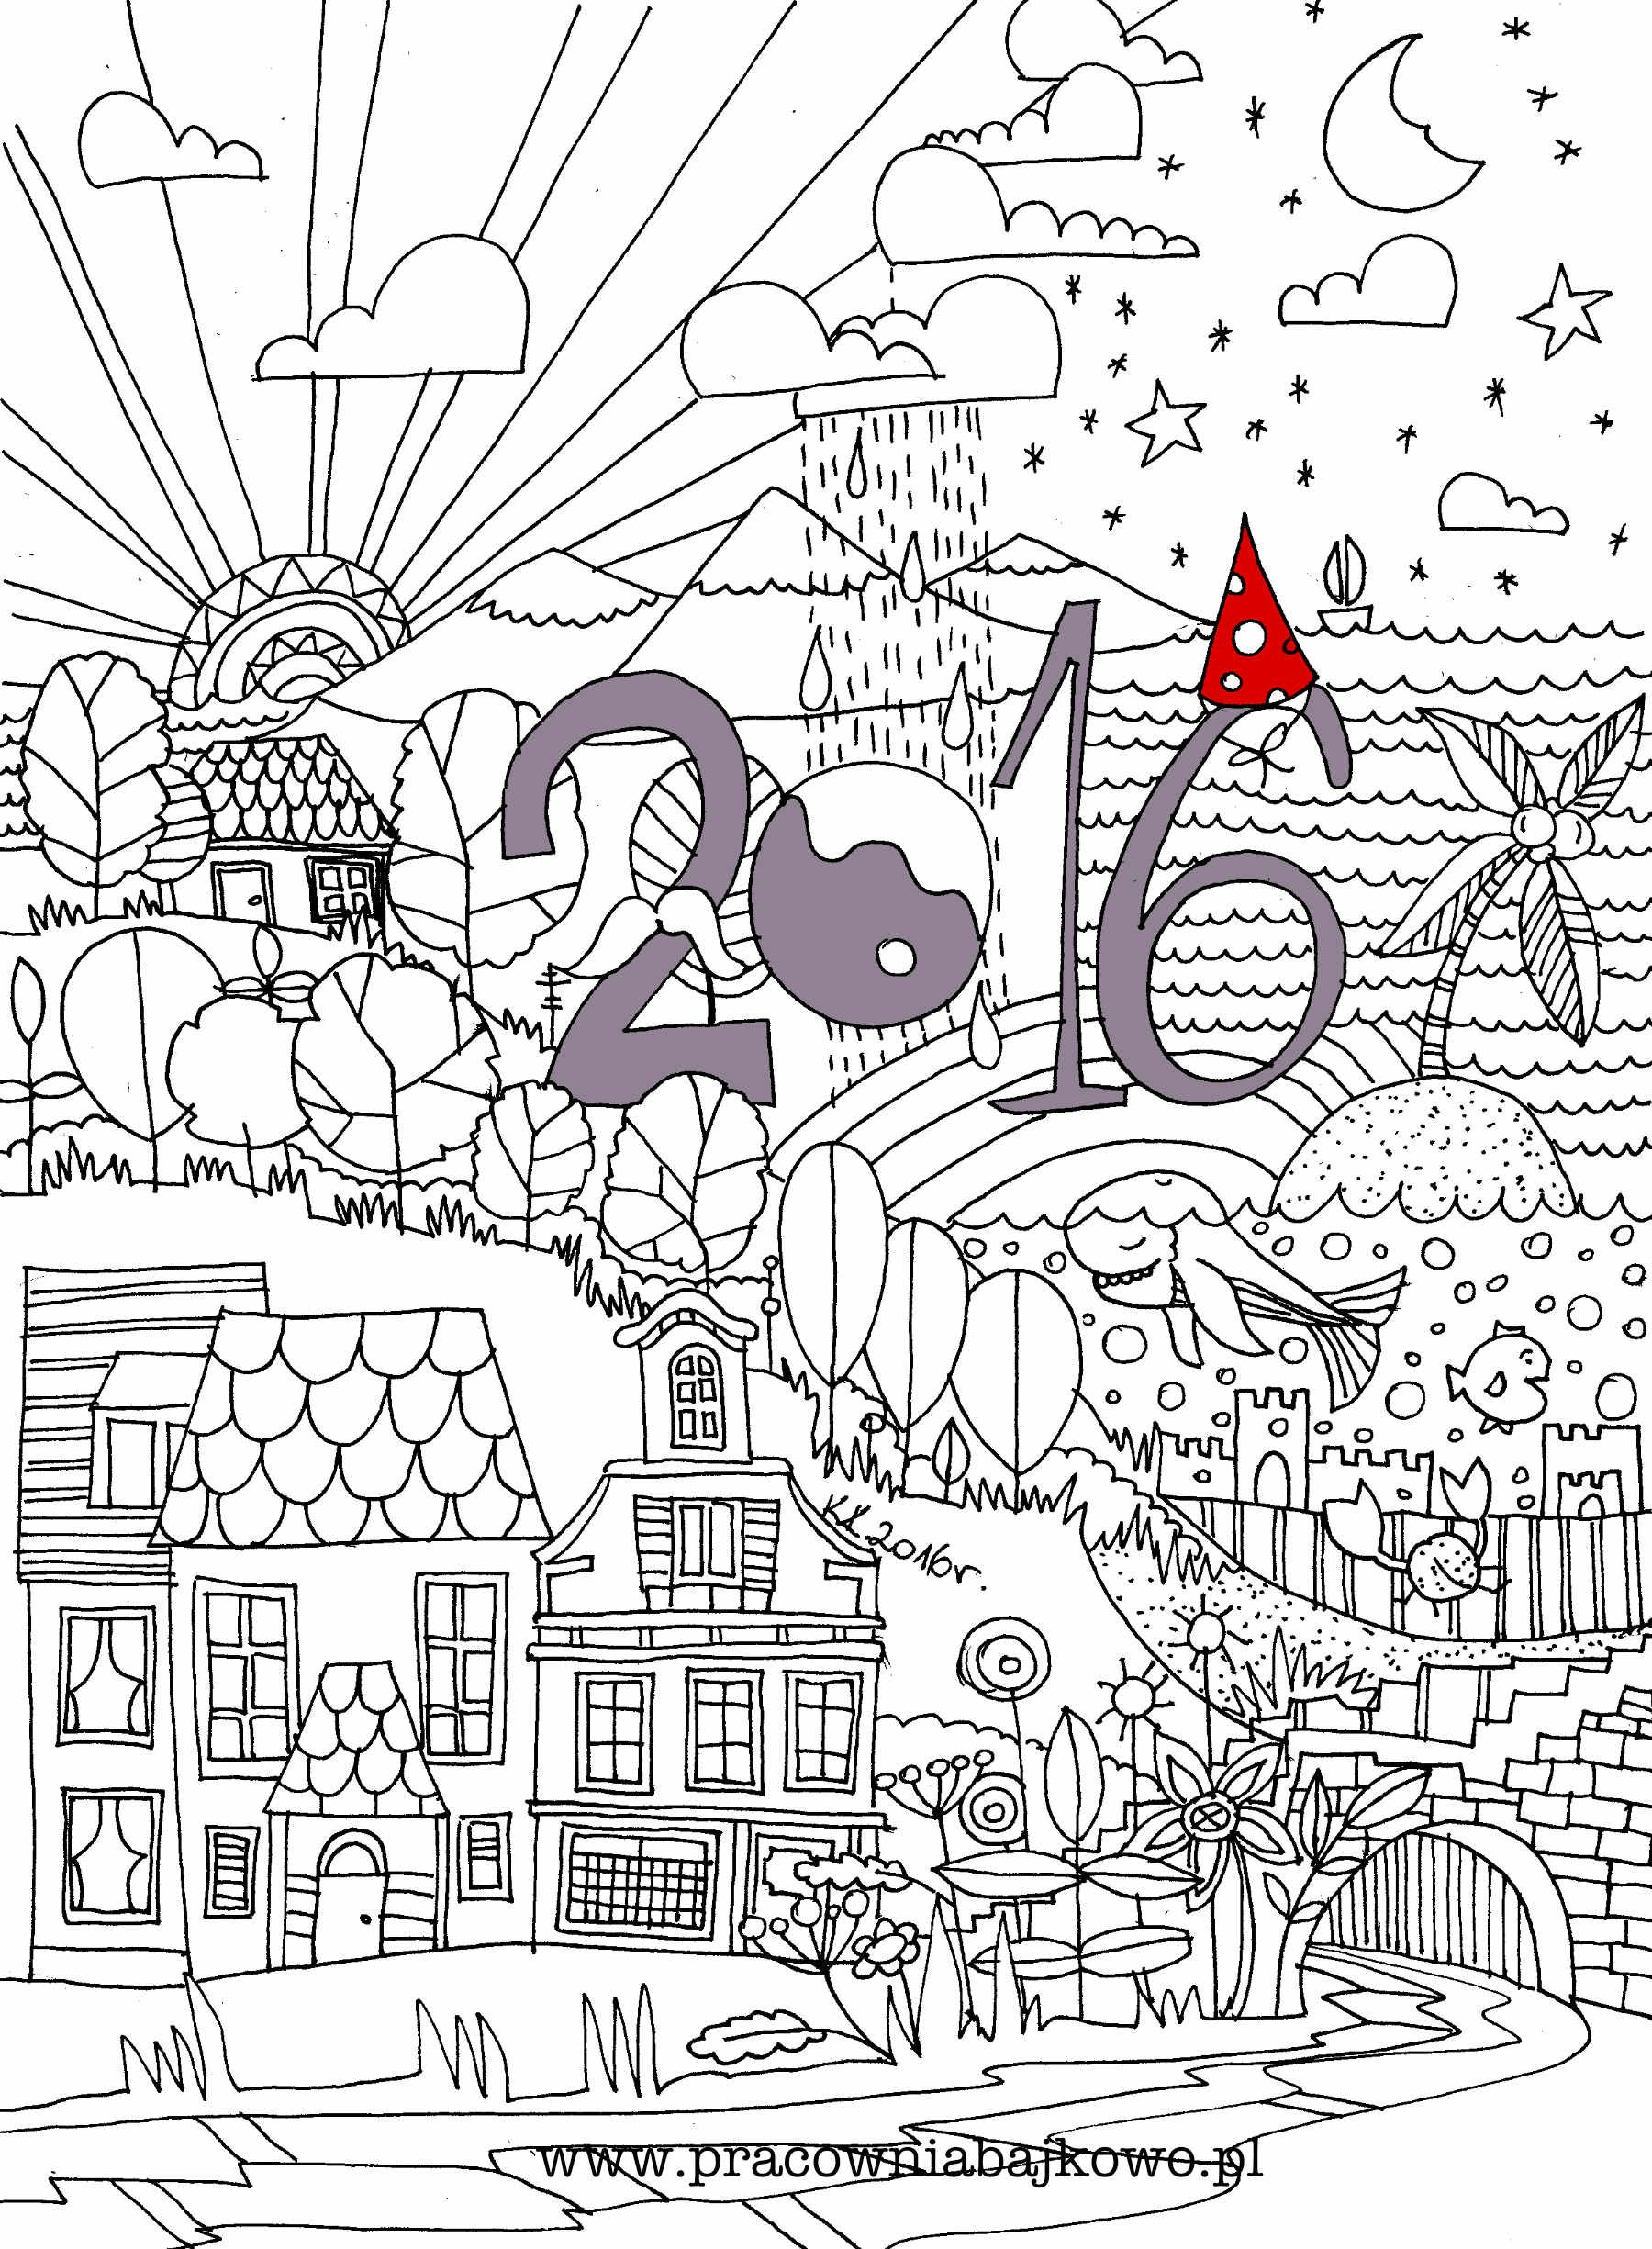 Happy New Year 2016 Coloring Books Coloring Pages Coloring Pages To Print